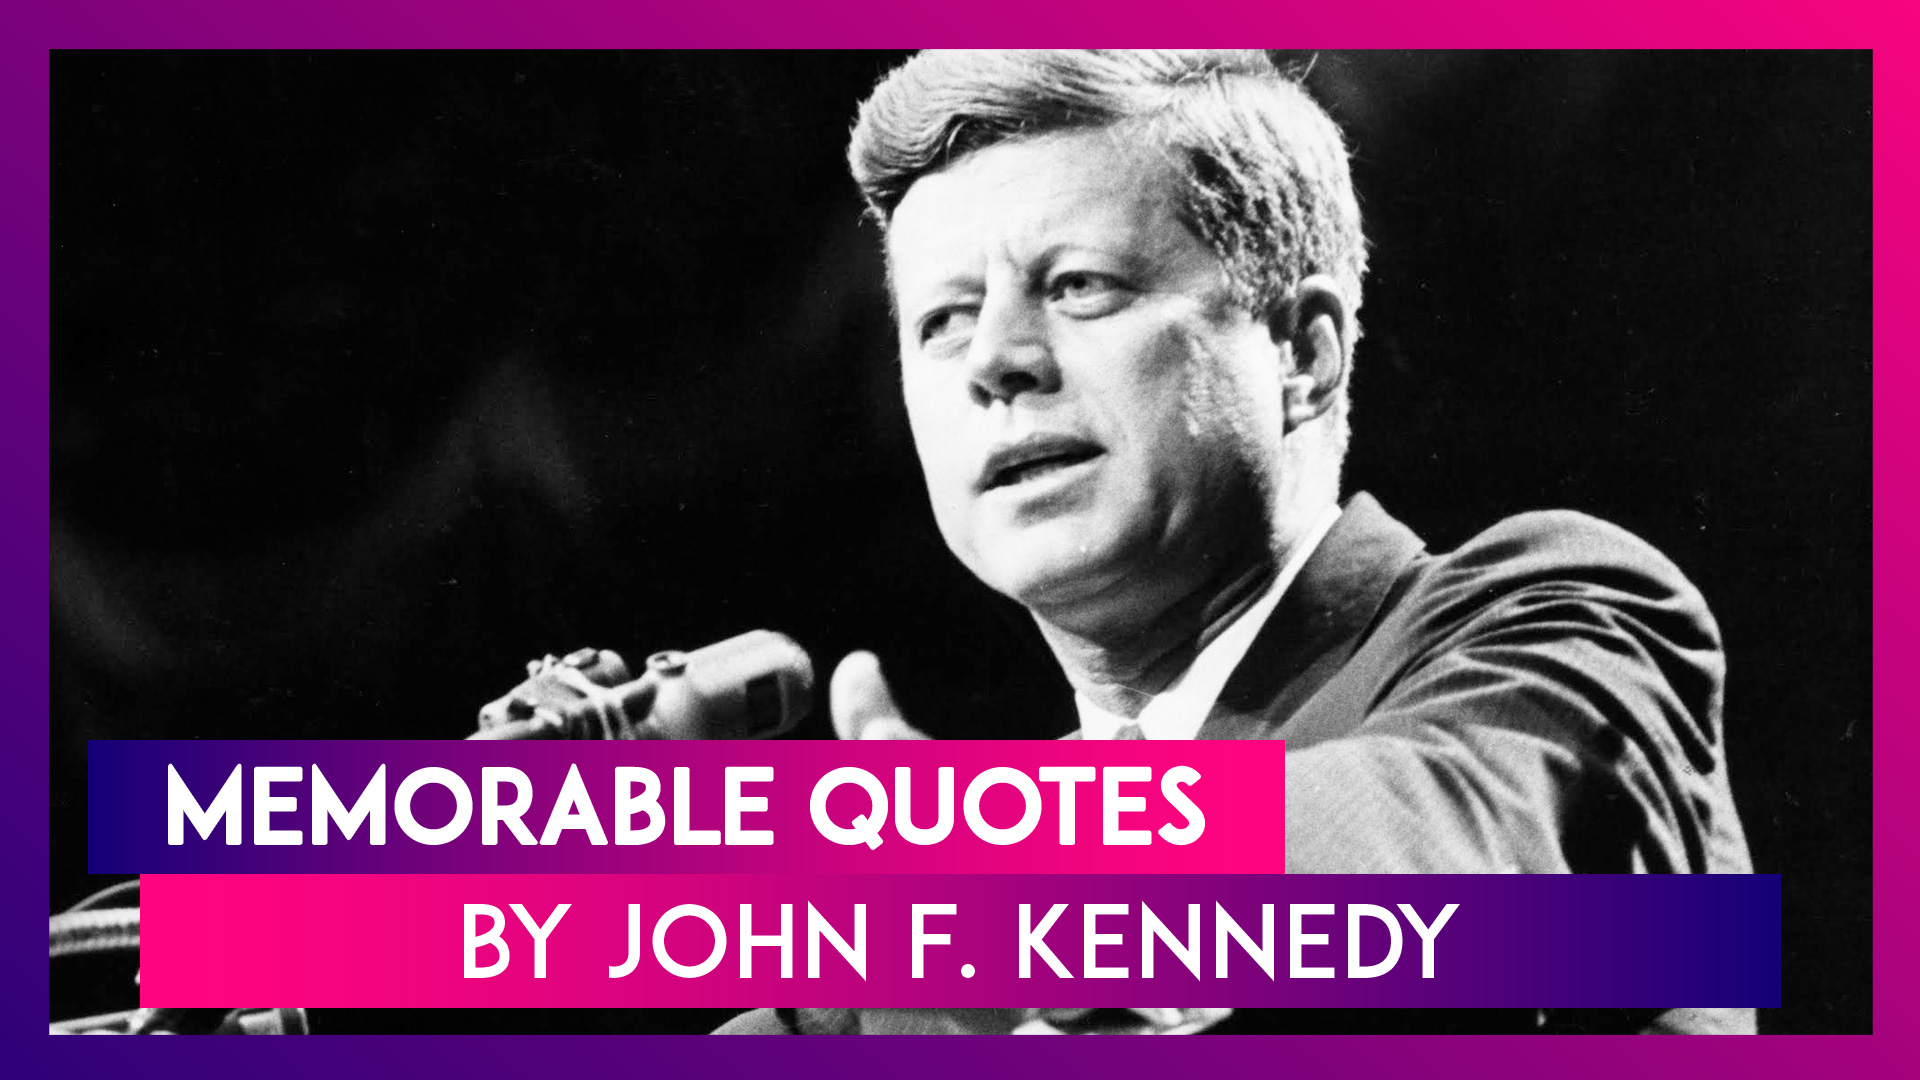 John F. Kennedy Quotes: Remembering 35th US President on His 103rd Birth Anniversary